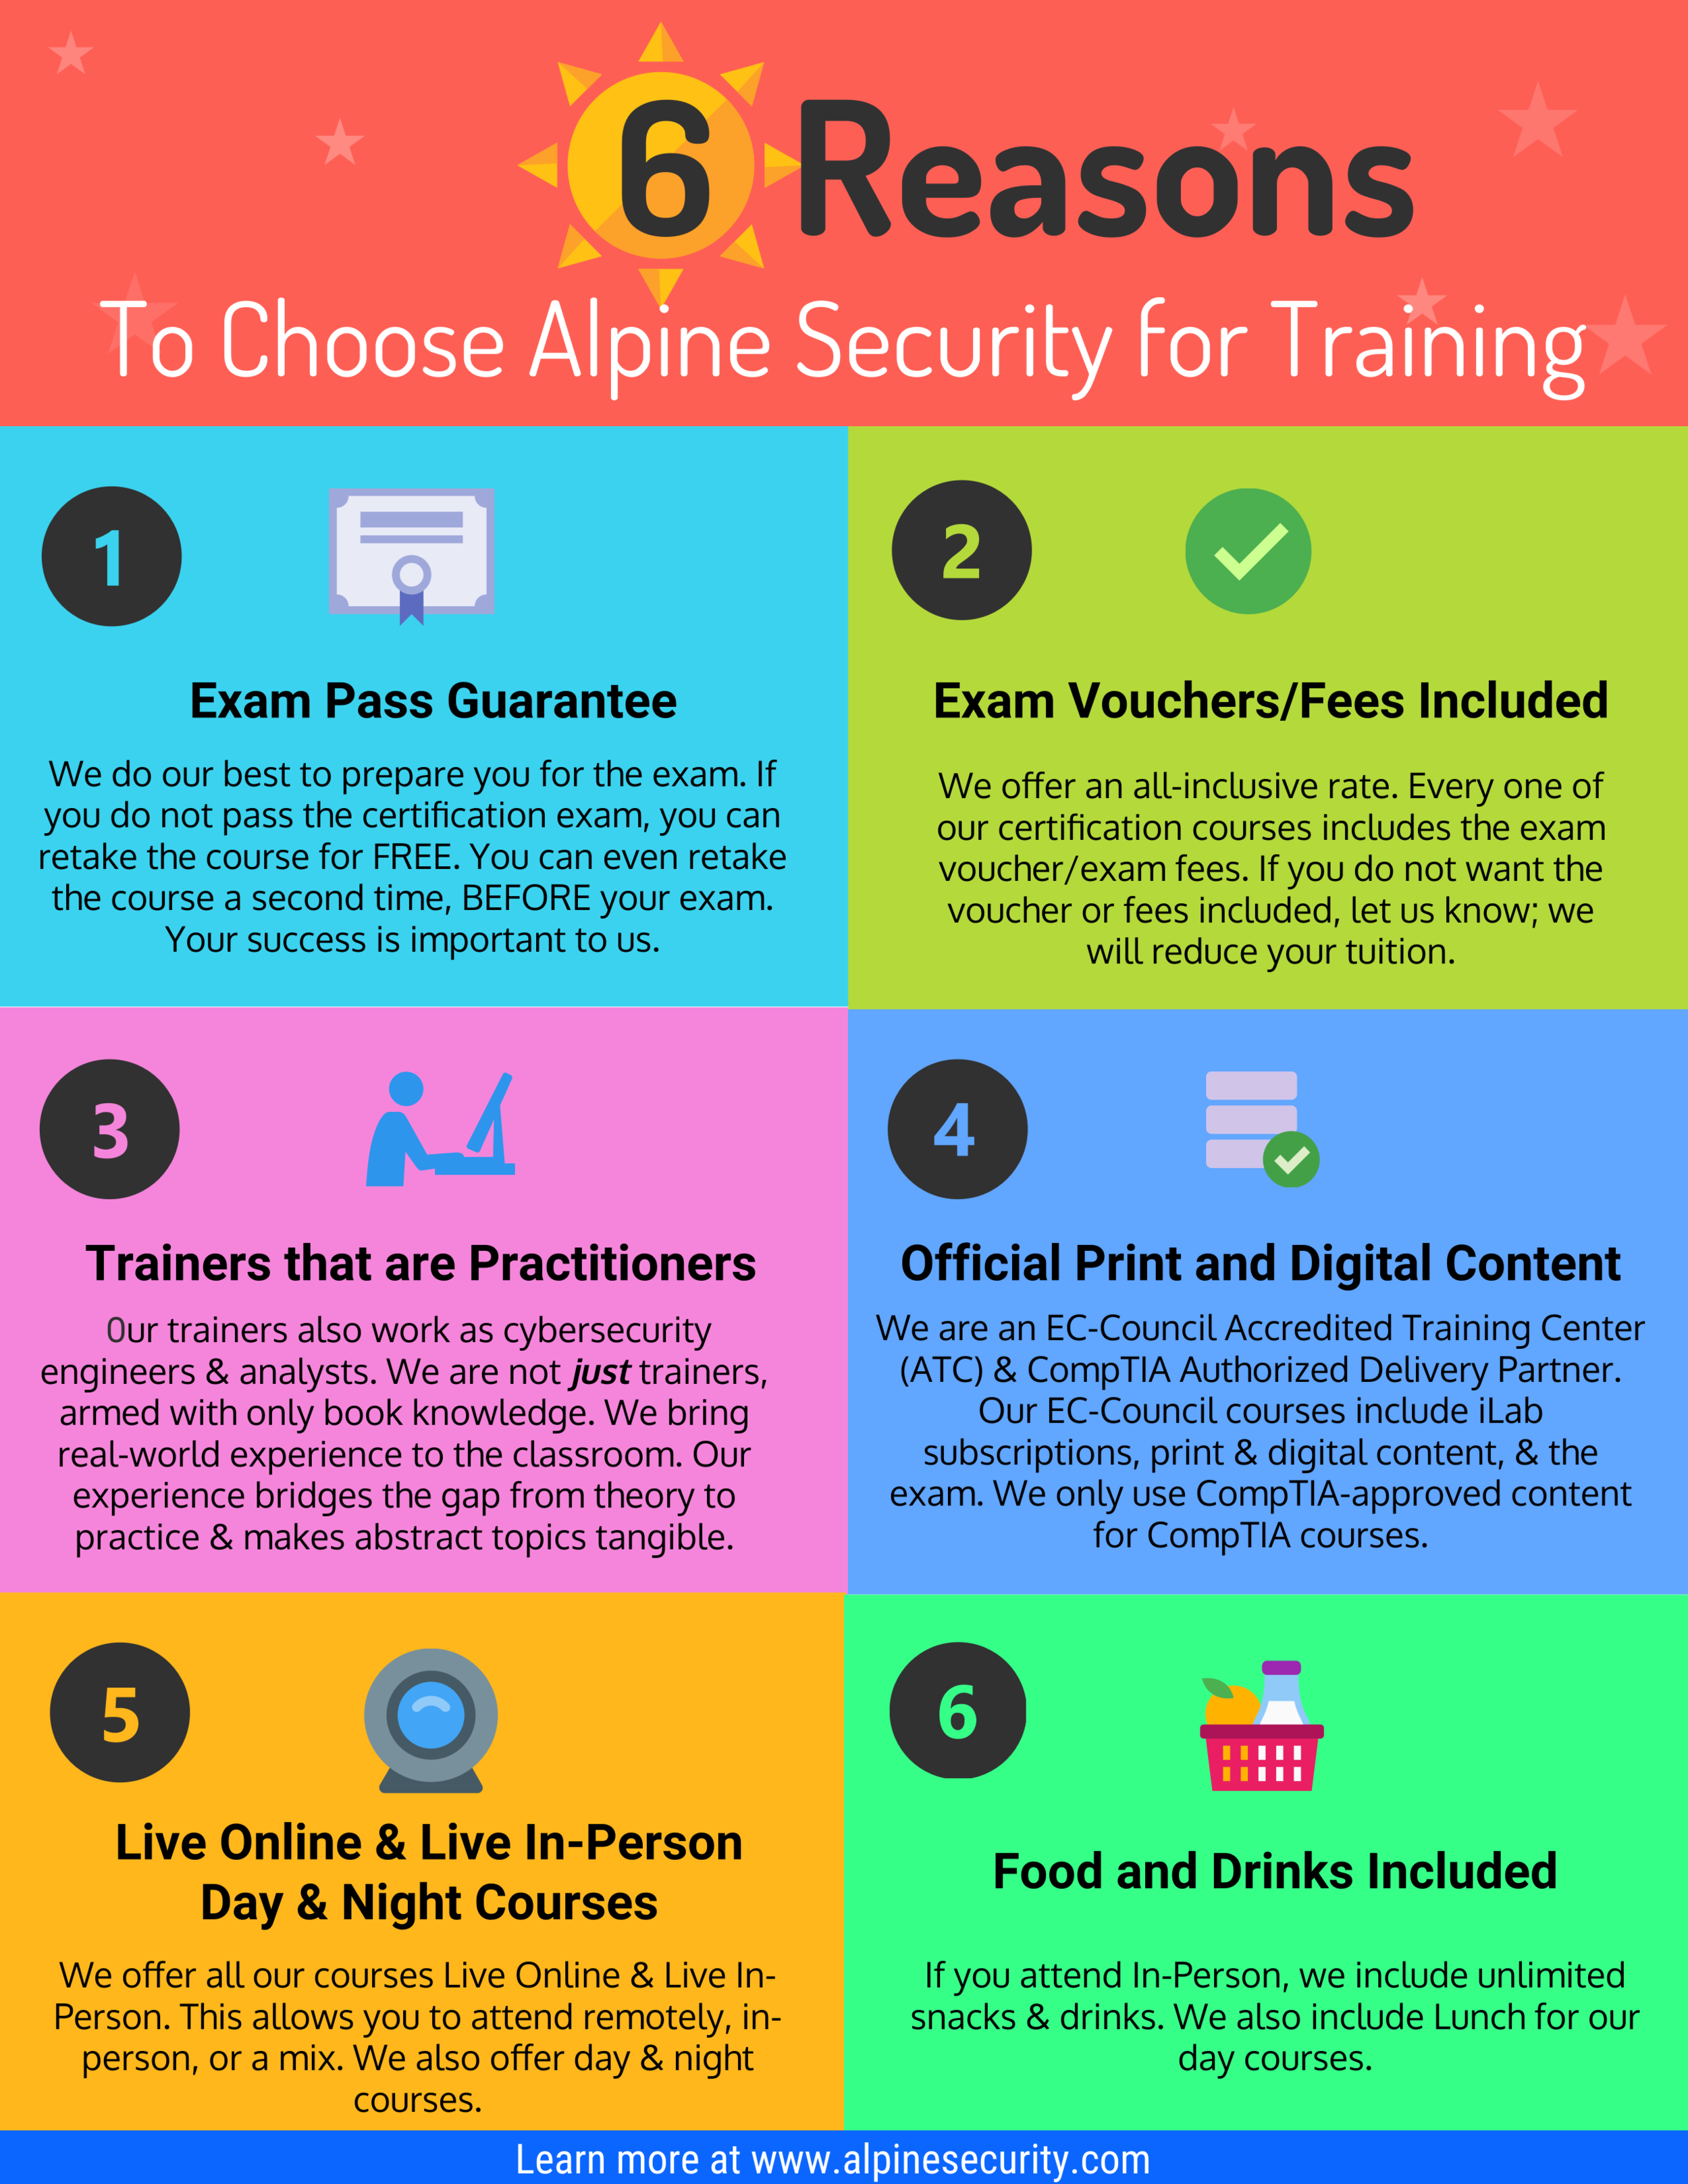 6 Reasons to Choose Alpine Security for Cybersecurity Training